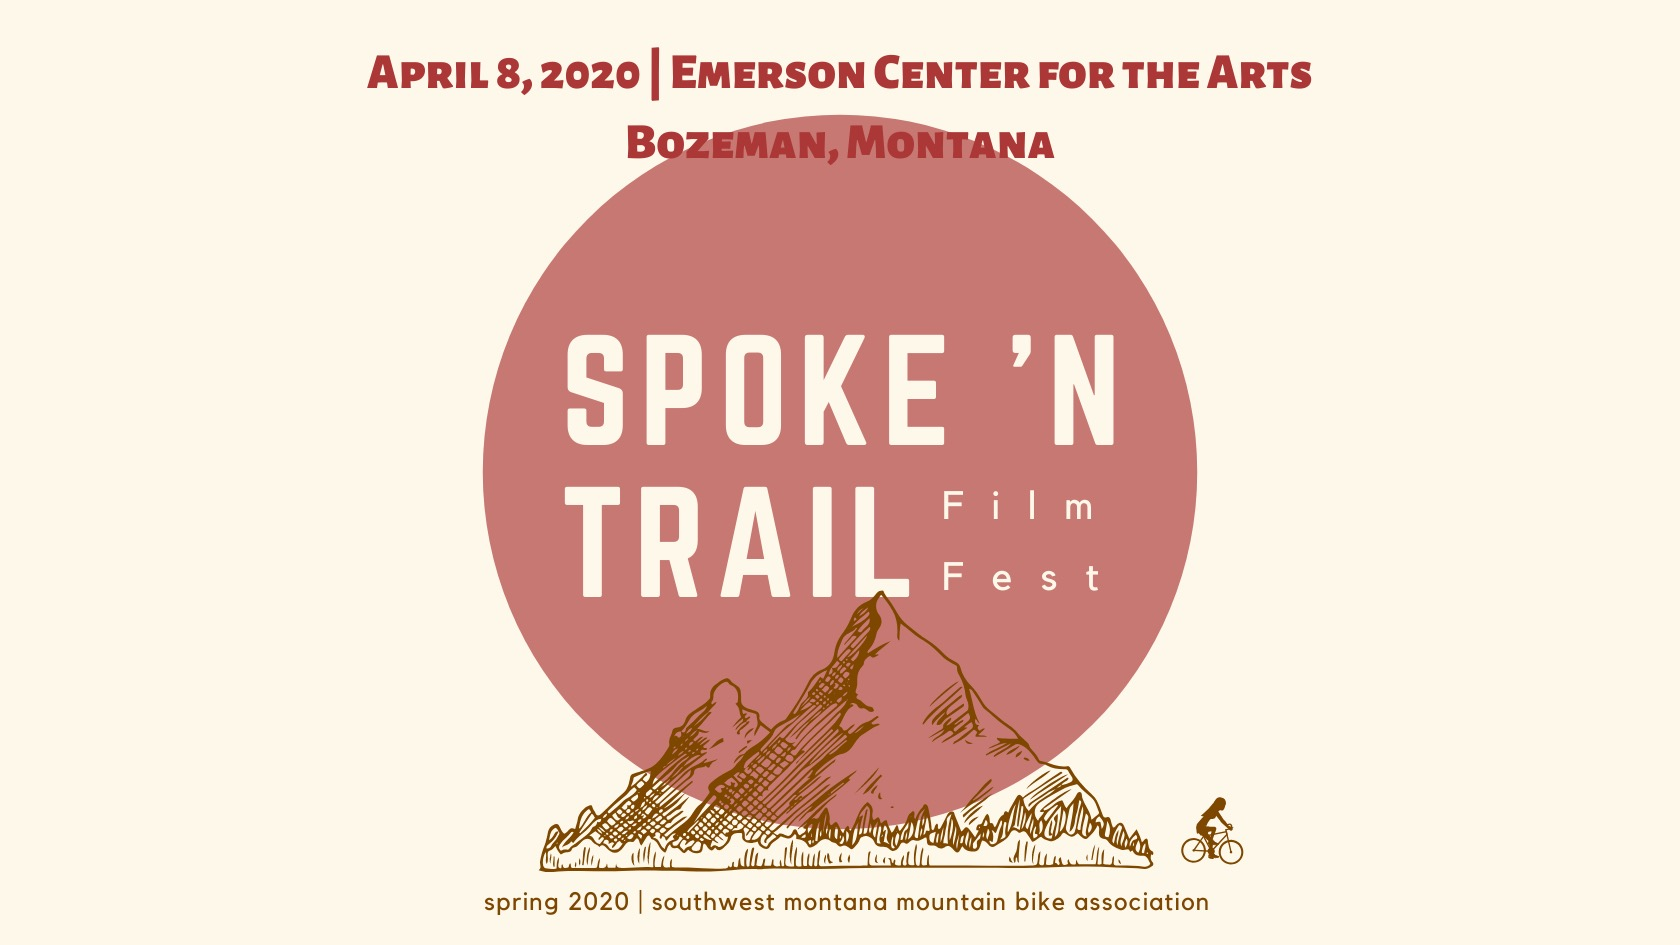 Spoke N' Trail Film Festival